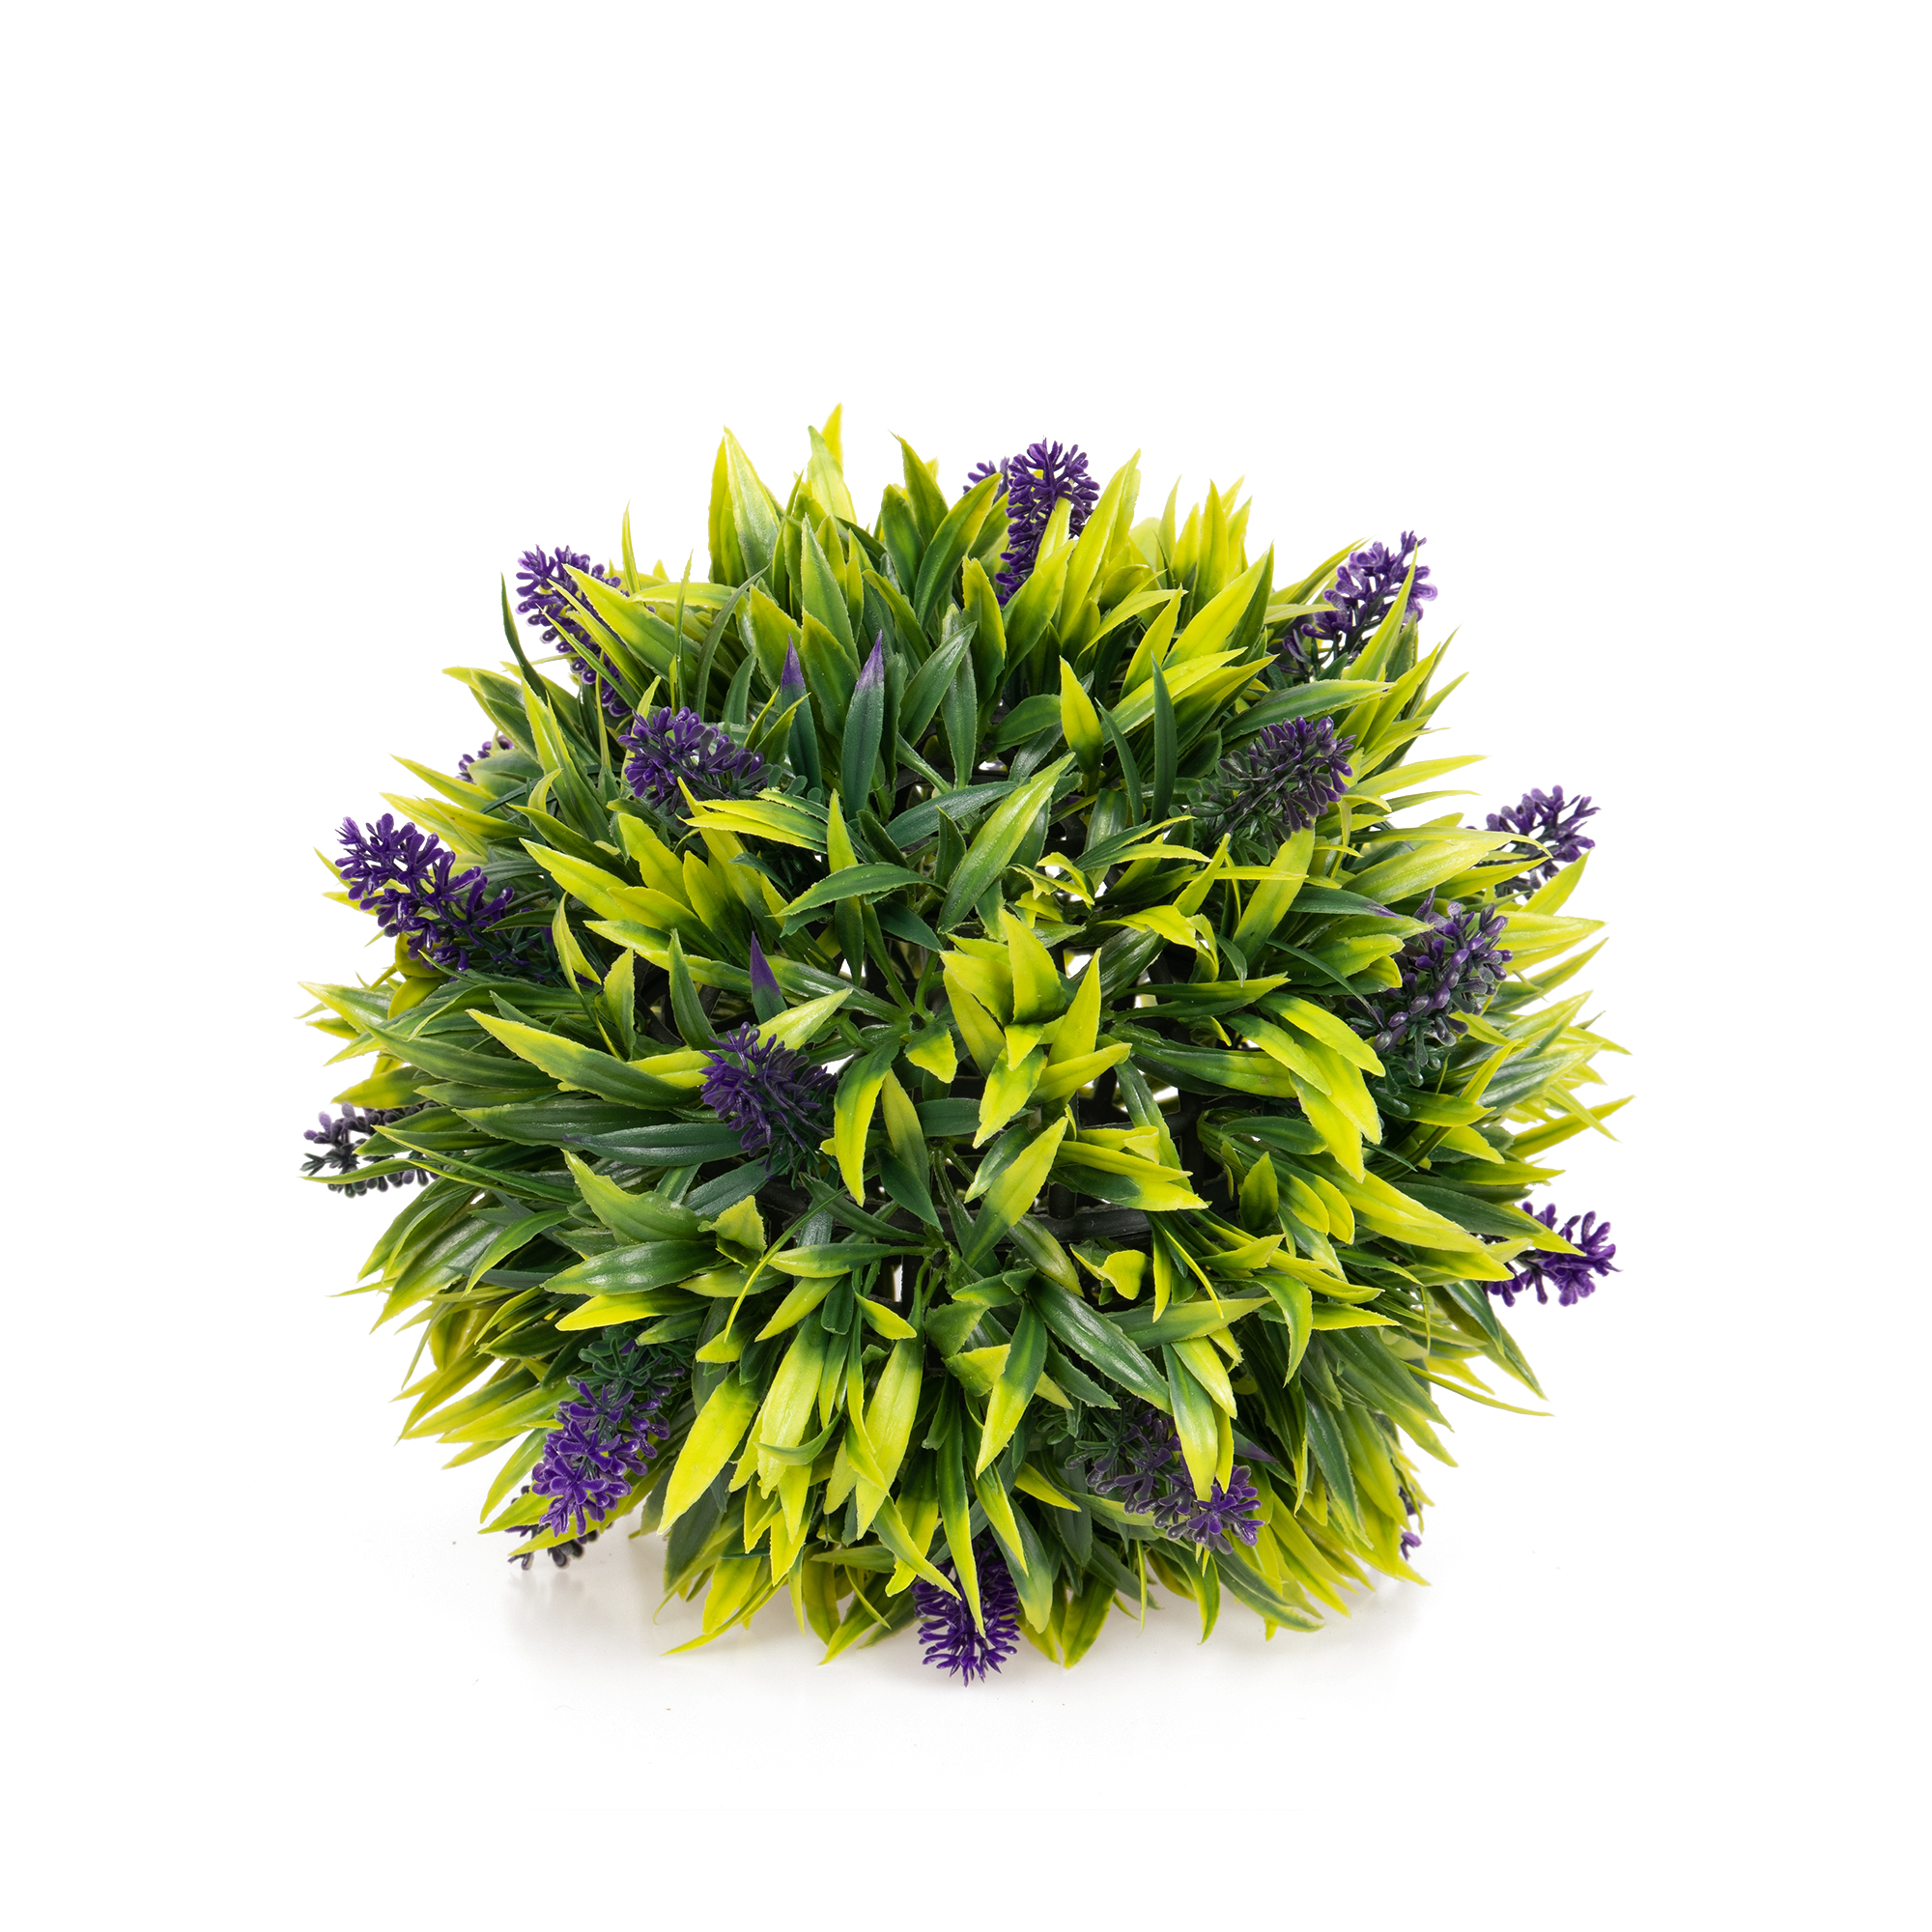 Wholesale Artificial Lavender Topiary Ball Round Artificial Boxwood Flower Ball For Garden Decoration Buy Artificial Lavender Grass Topiary Ball High Quality Artificial Flower Ball Grass Effect Topiary Flower Balls Product On Alibaba Com